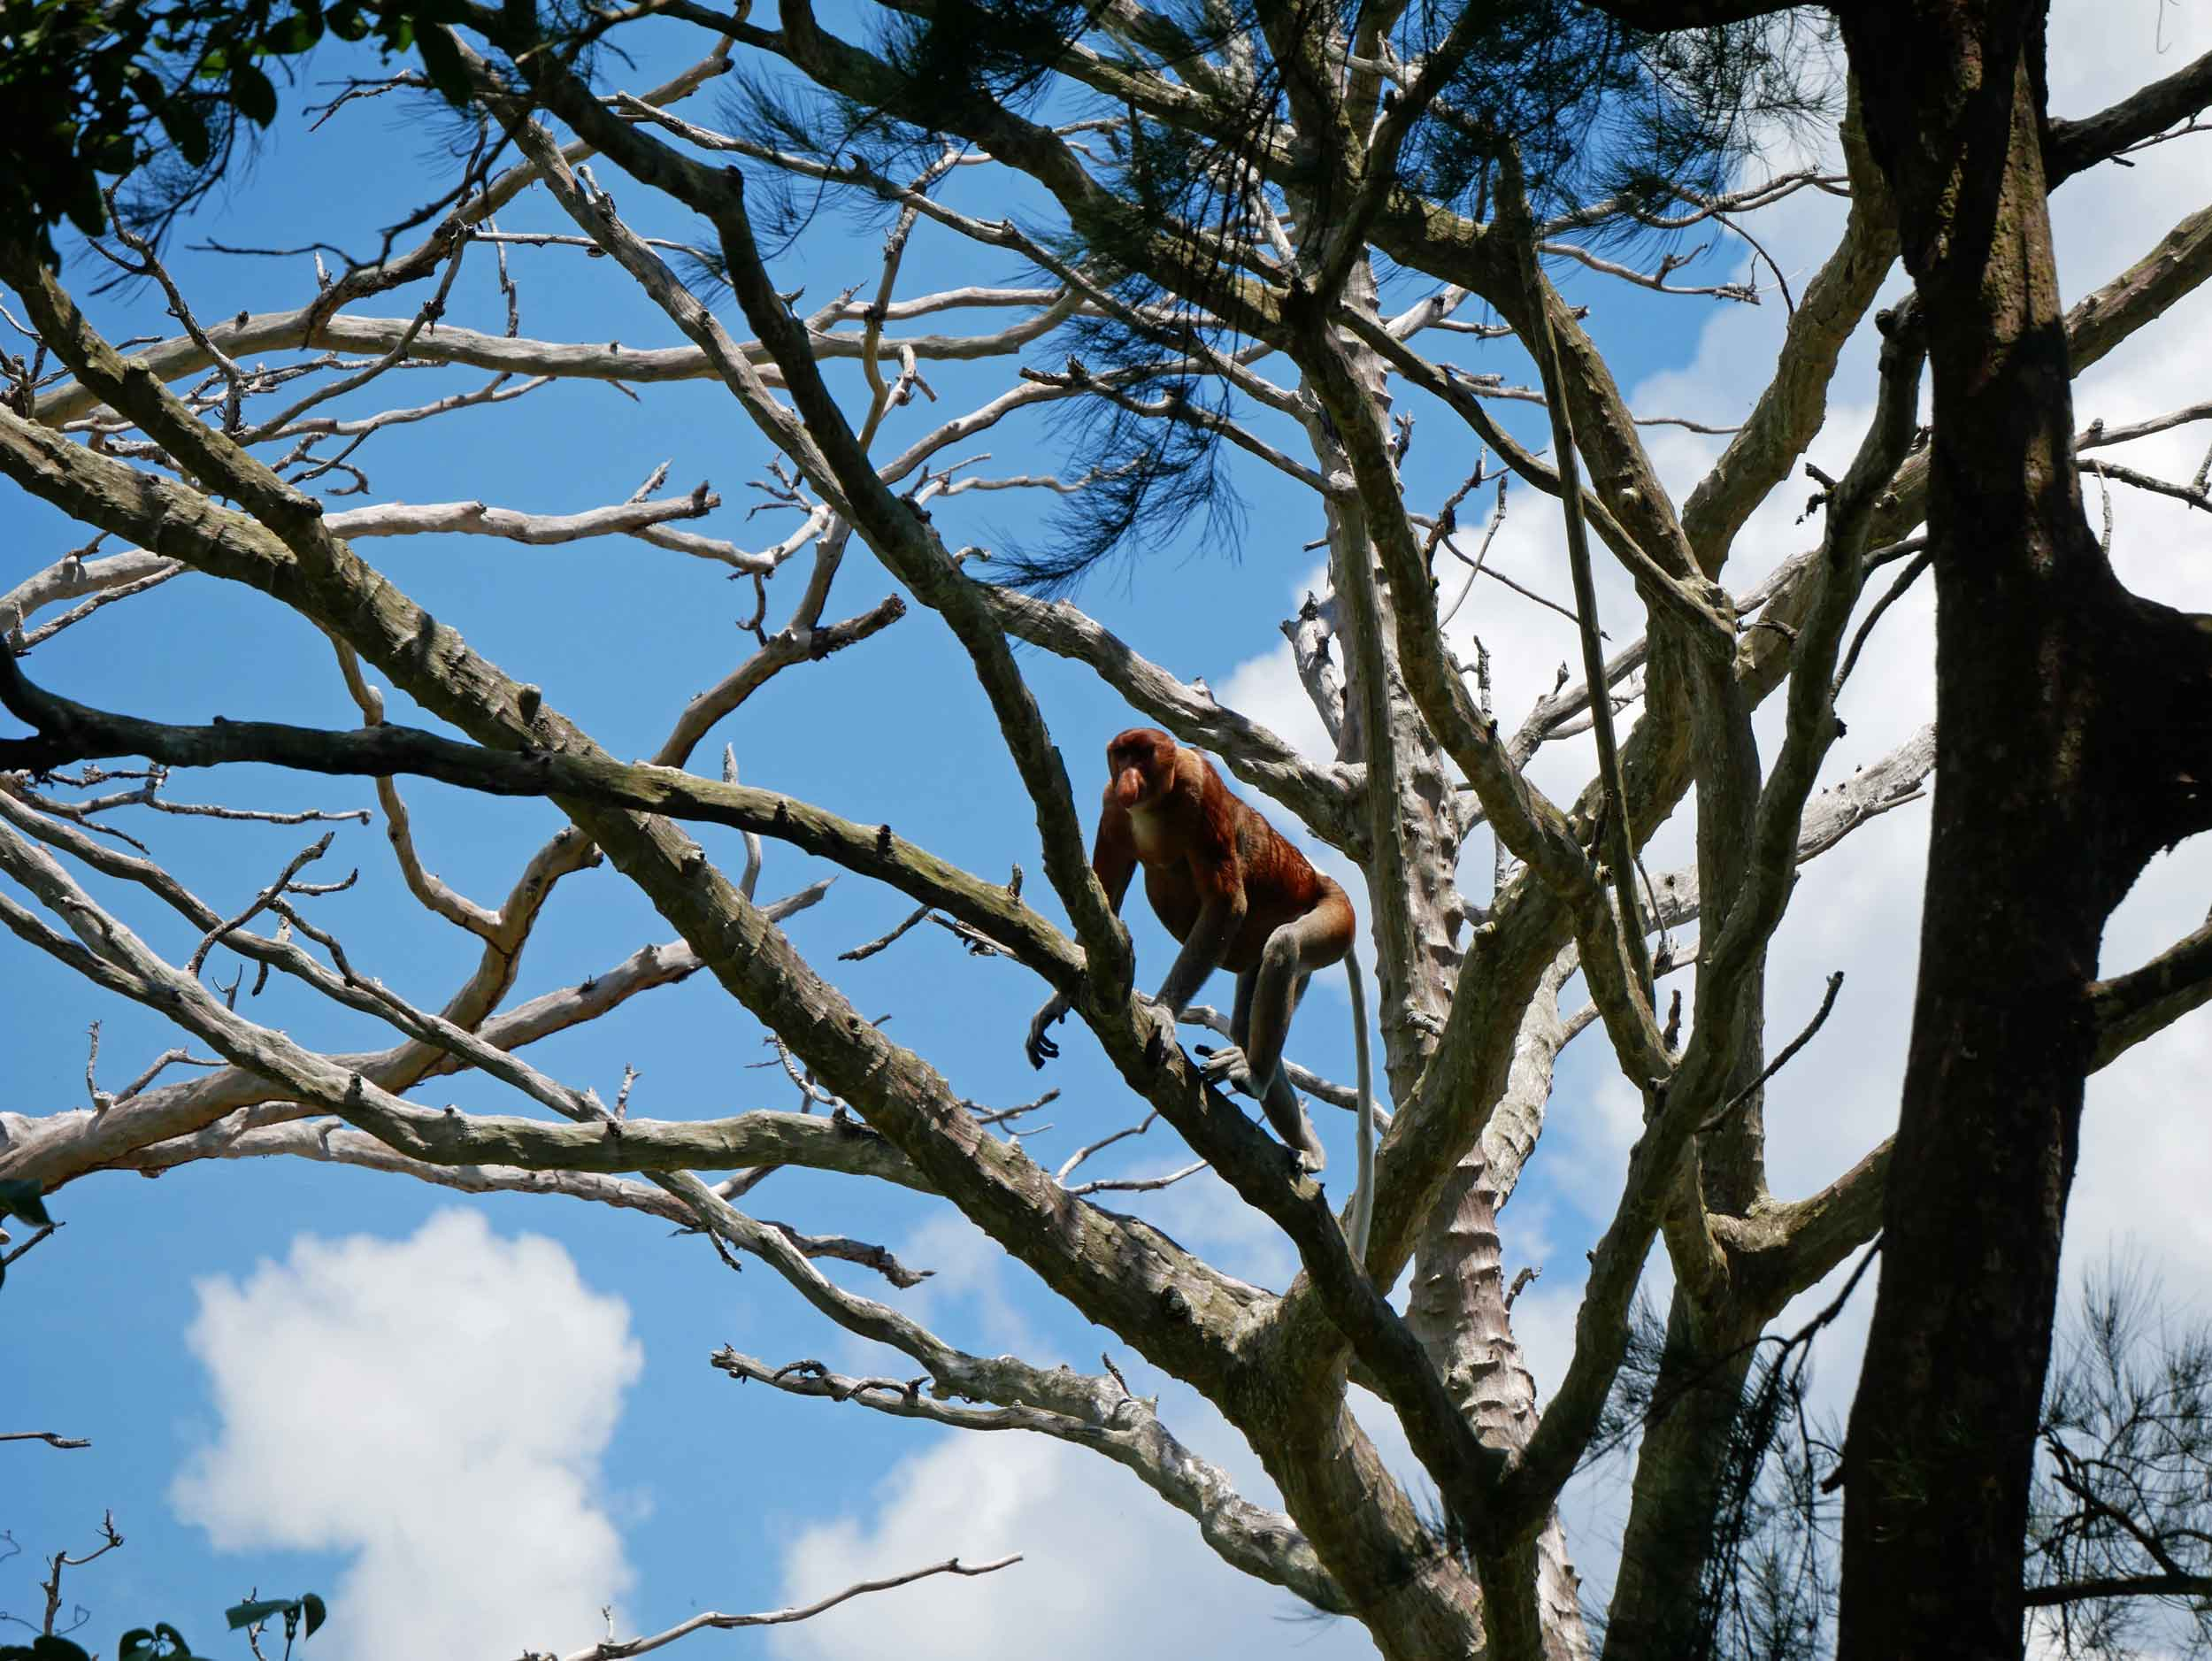 FINALLY! We spotted the rare proboscis monkeys, exclusive to Borneo and odd-looking with their pendulous noses.